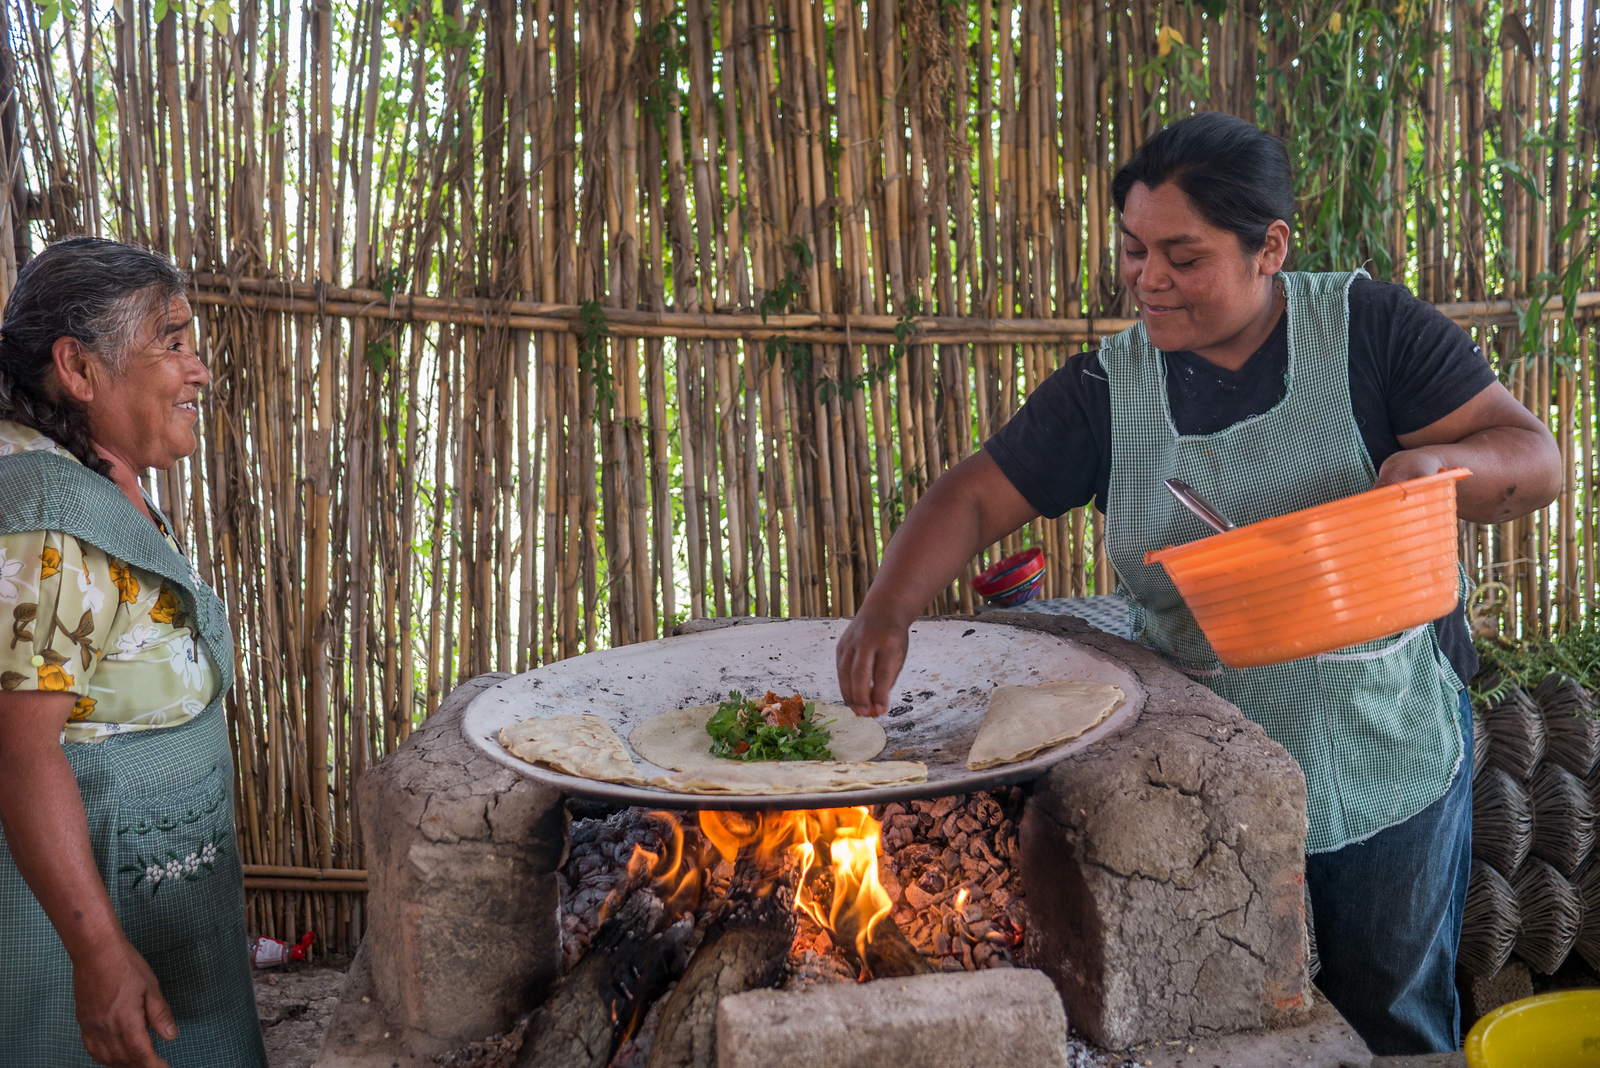 Stories from the Oaxaca Valley, Mexico